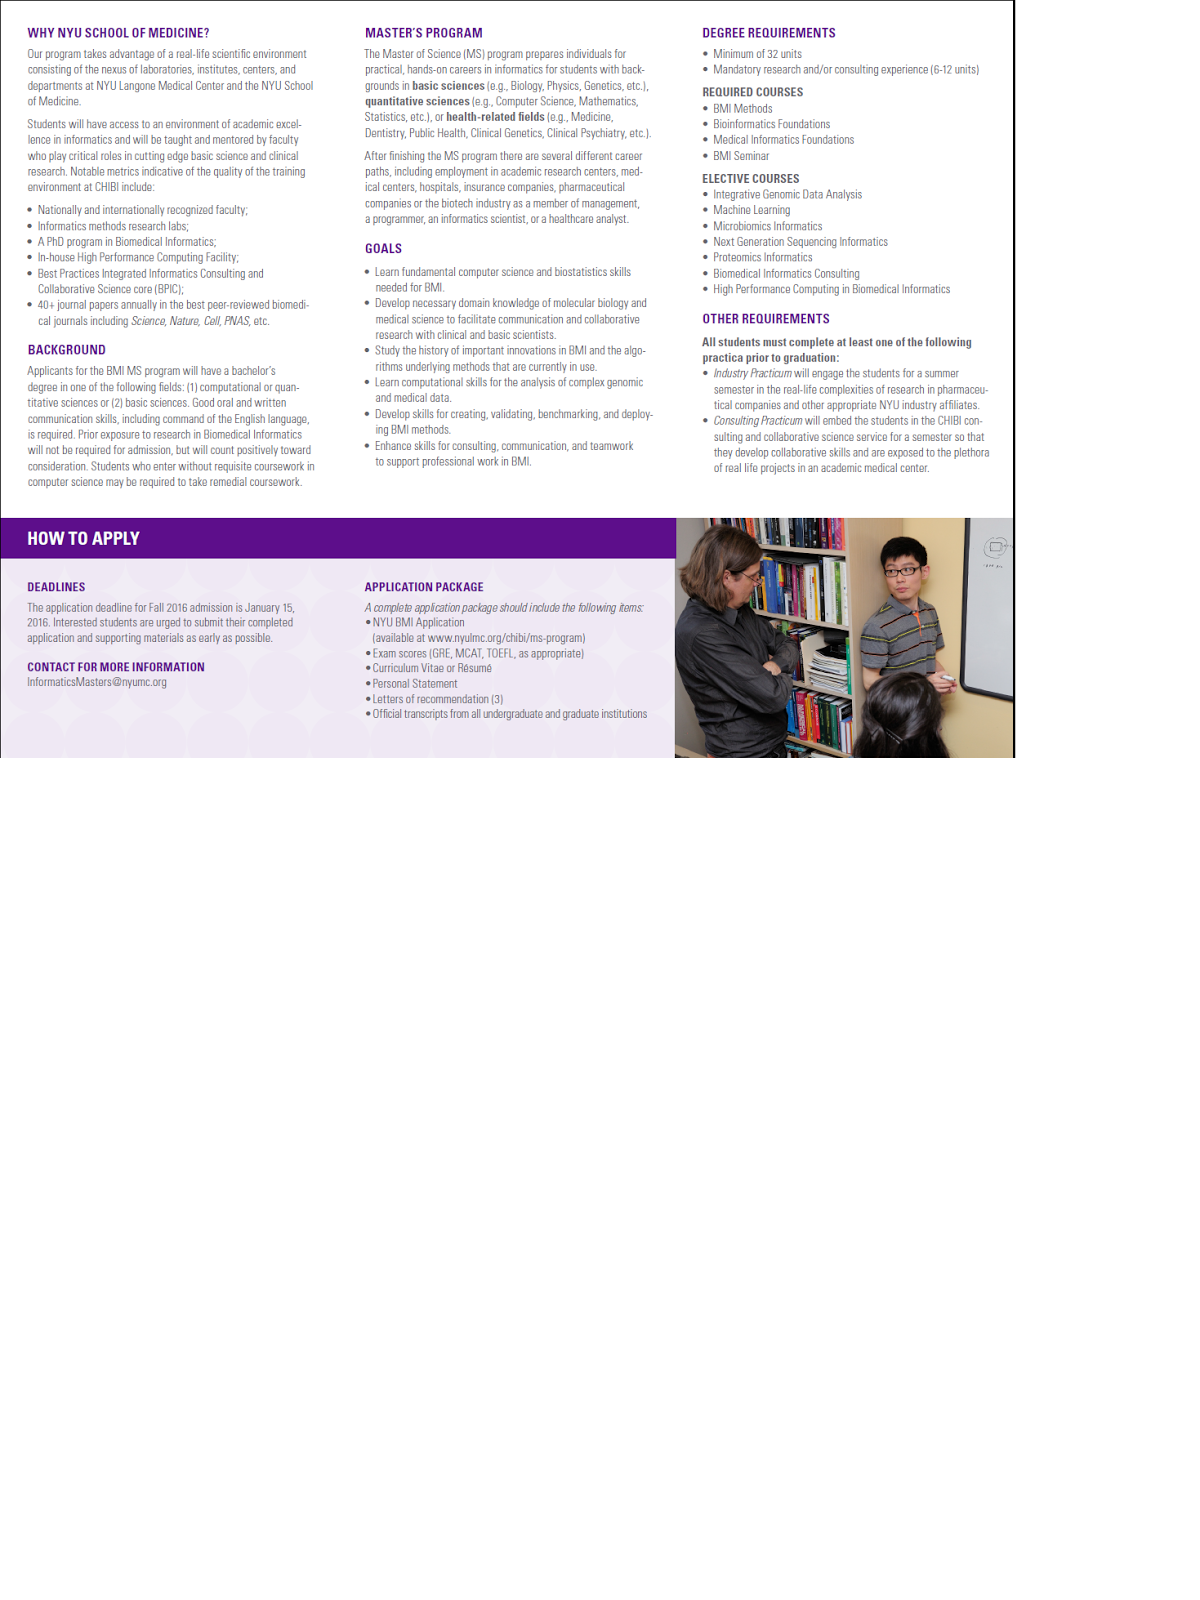 biomedical informatics at nyu school of medicine in 2016 we currently have about a dozen phd students but the masters program is intended to serve a